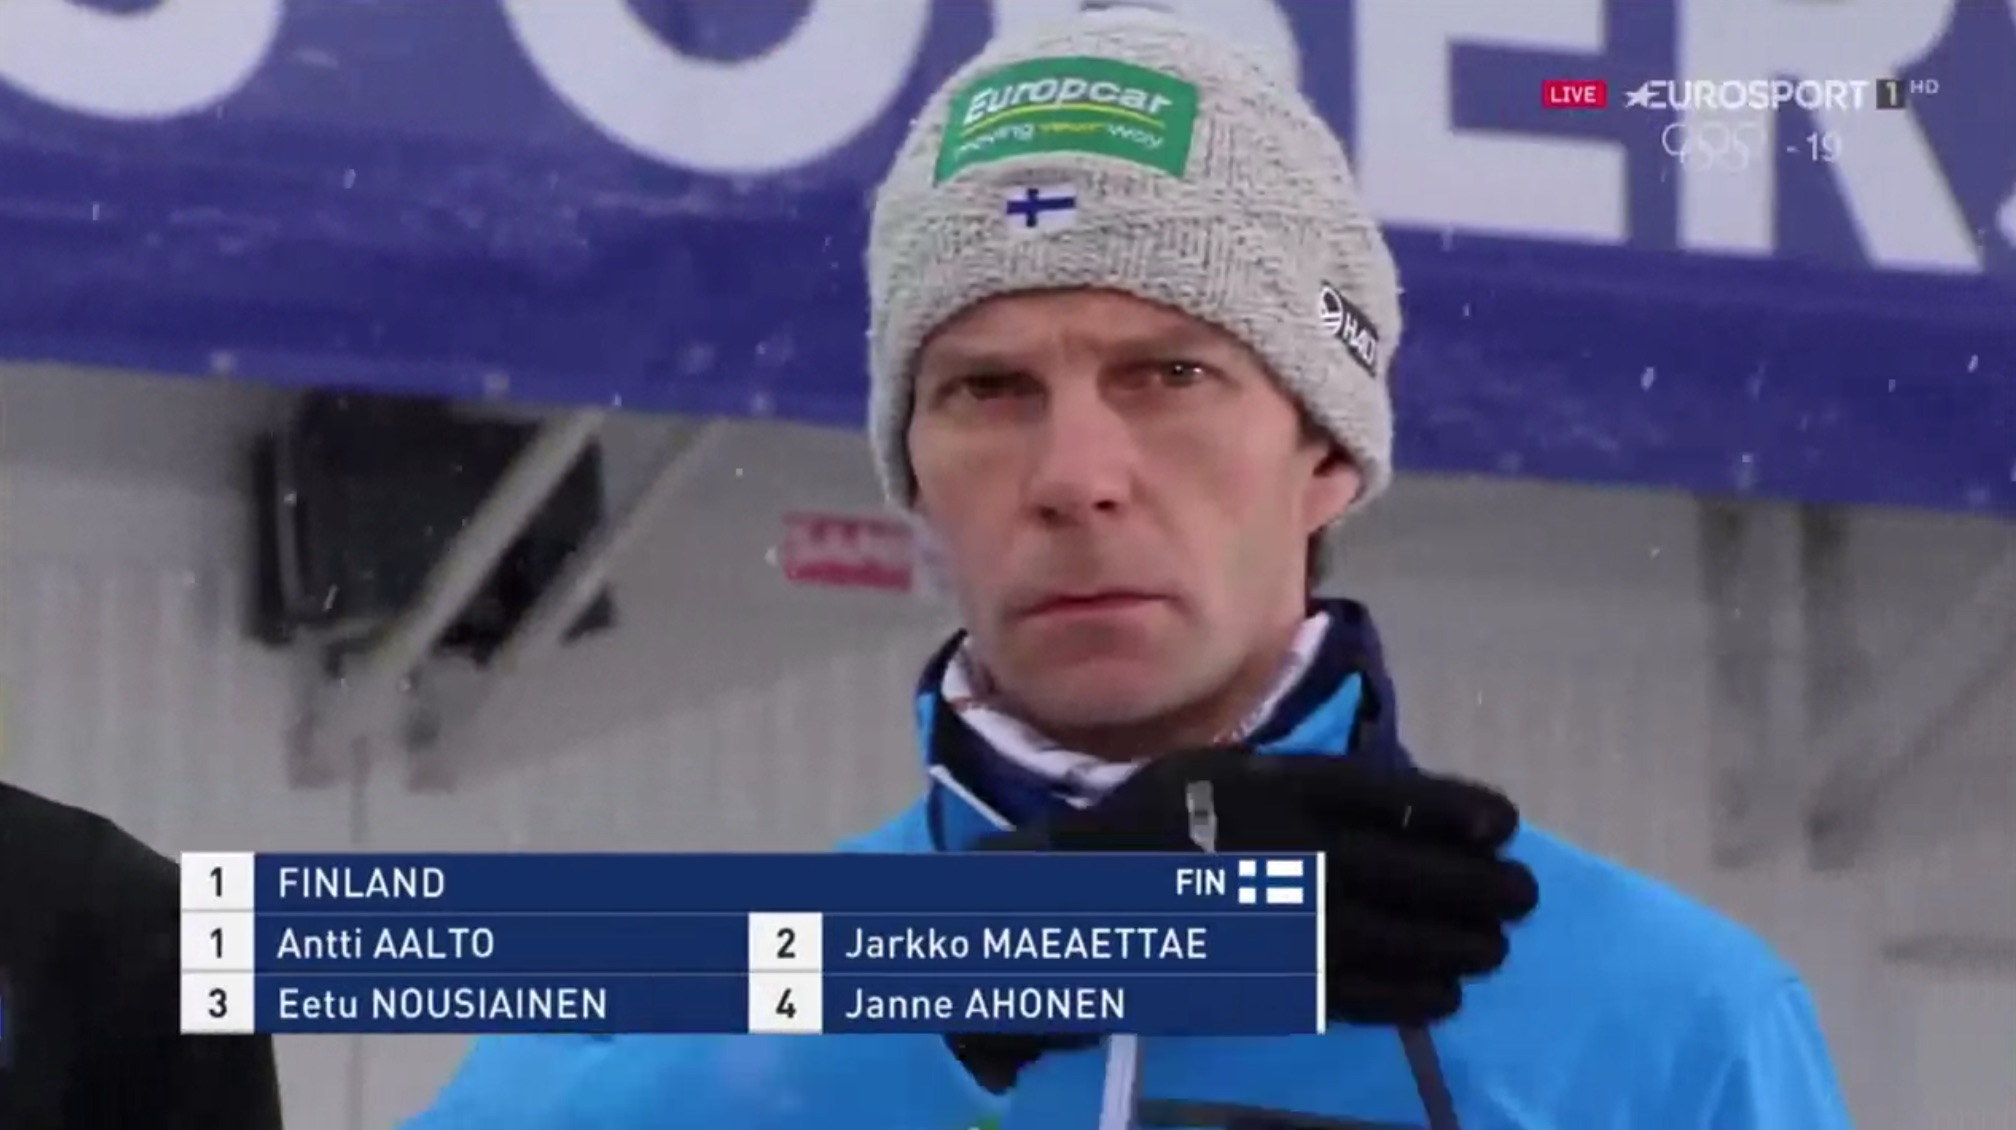 Watch the Finnish Ski Jumping team's hypnotic introduction